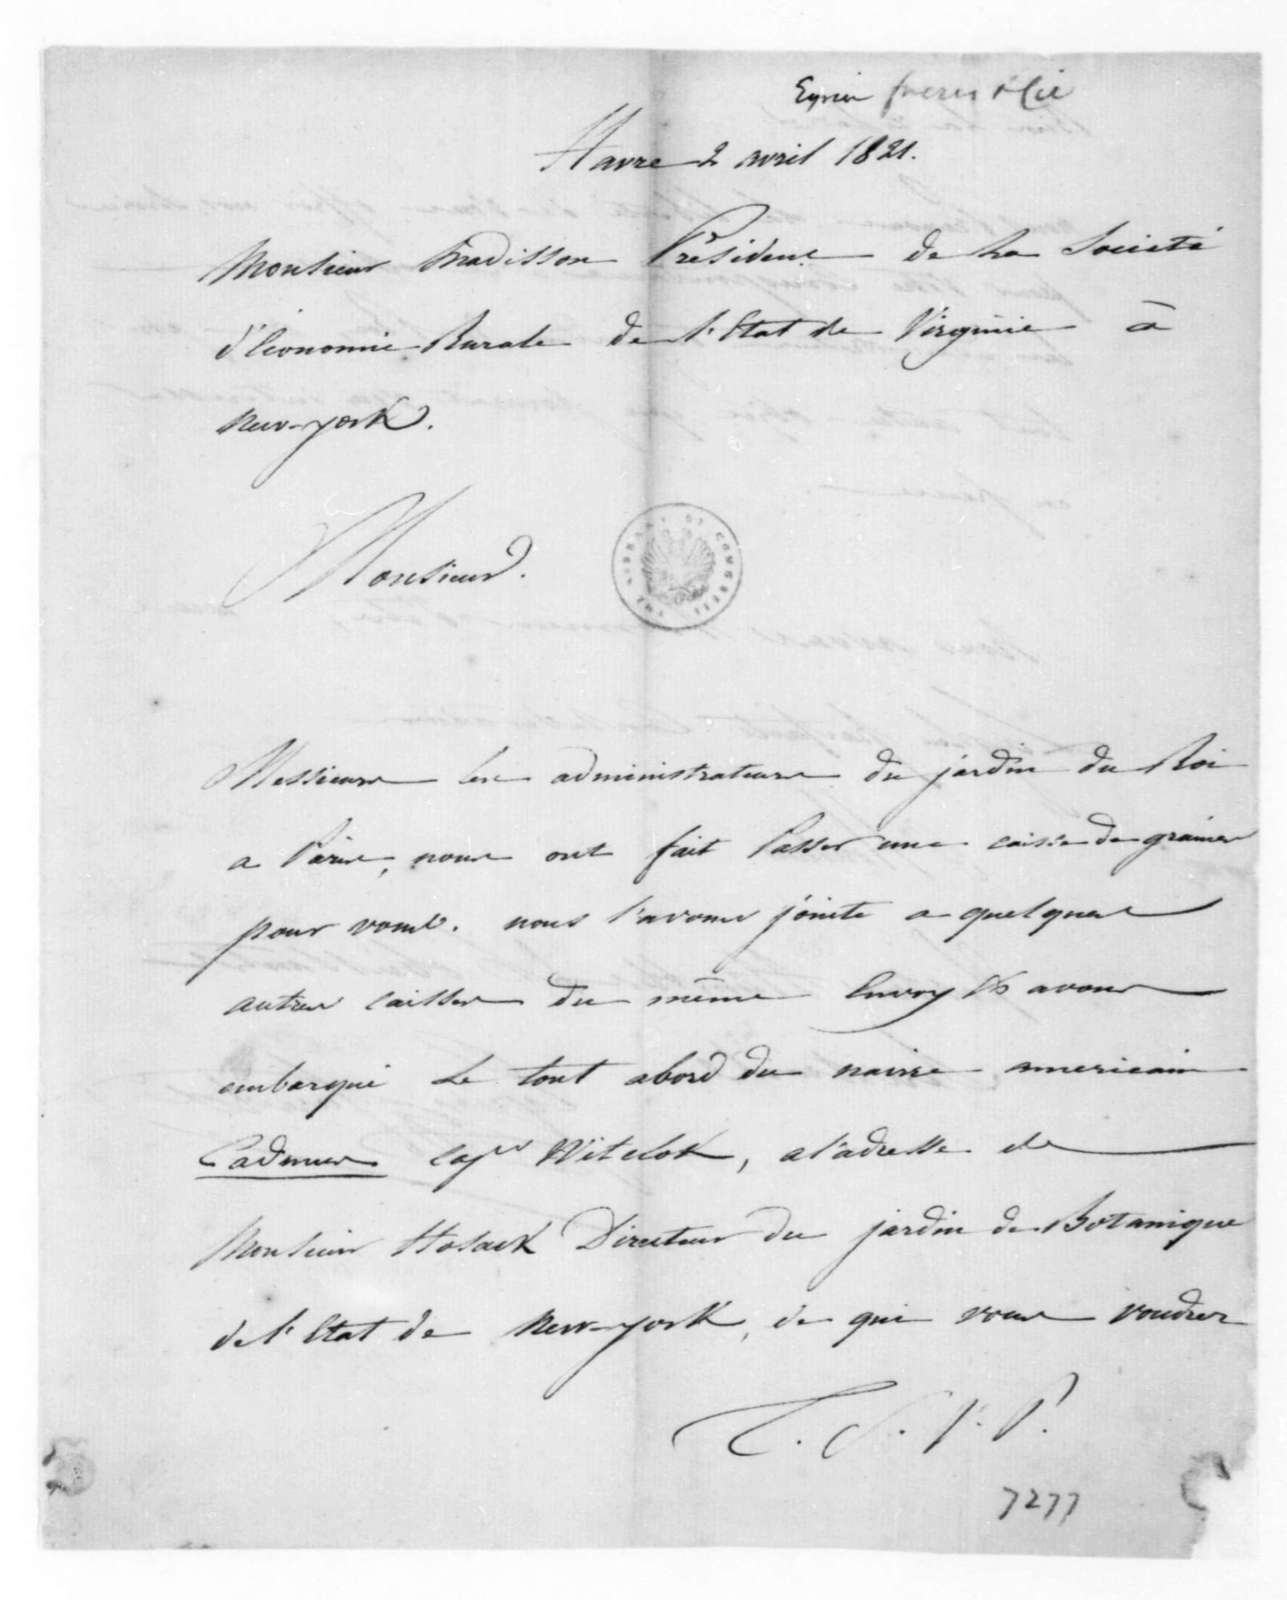 Eyrien Freres & Cie to James Madison, April 2, 1821. In French.